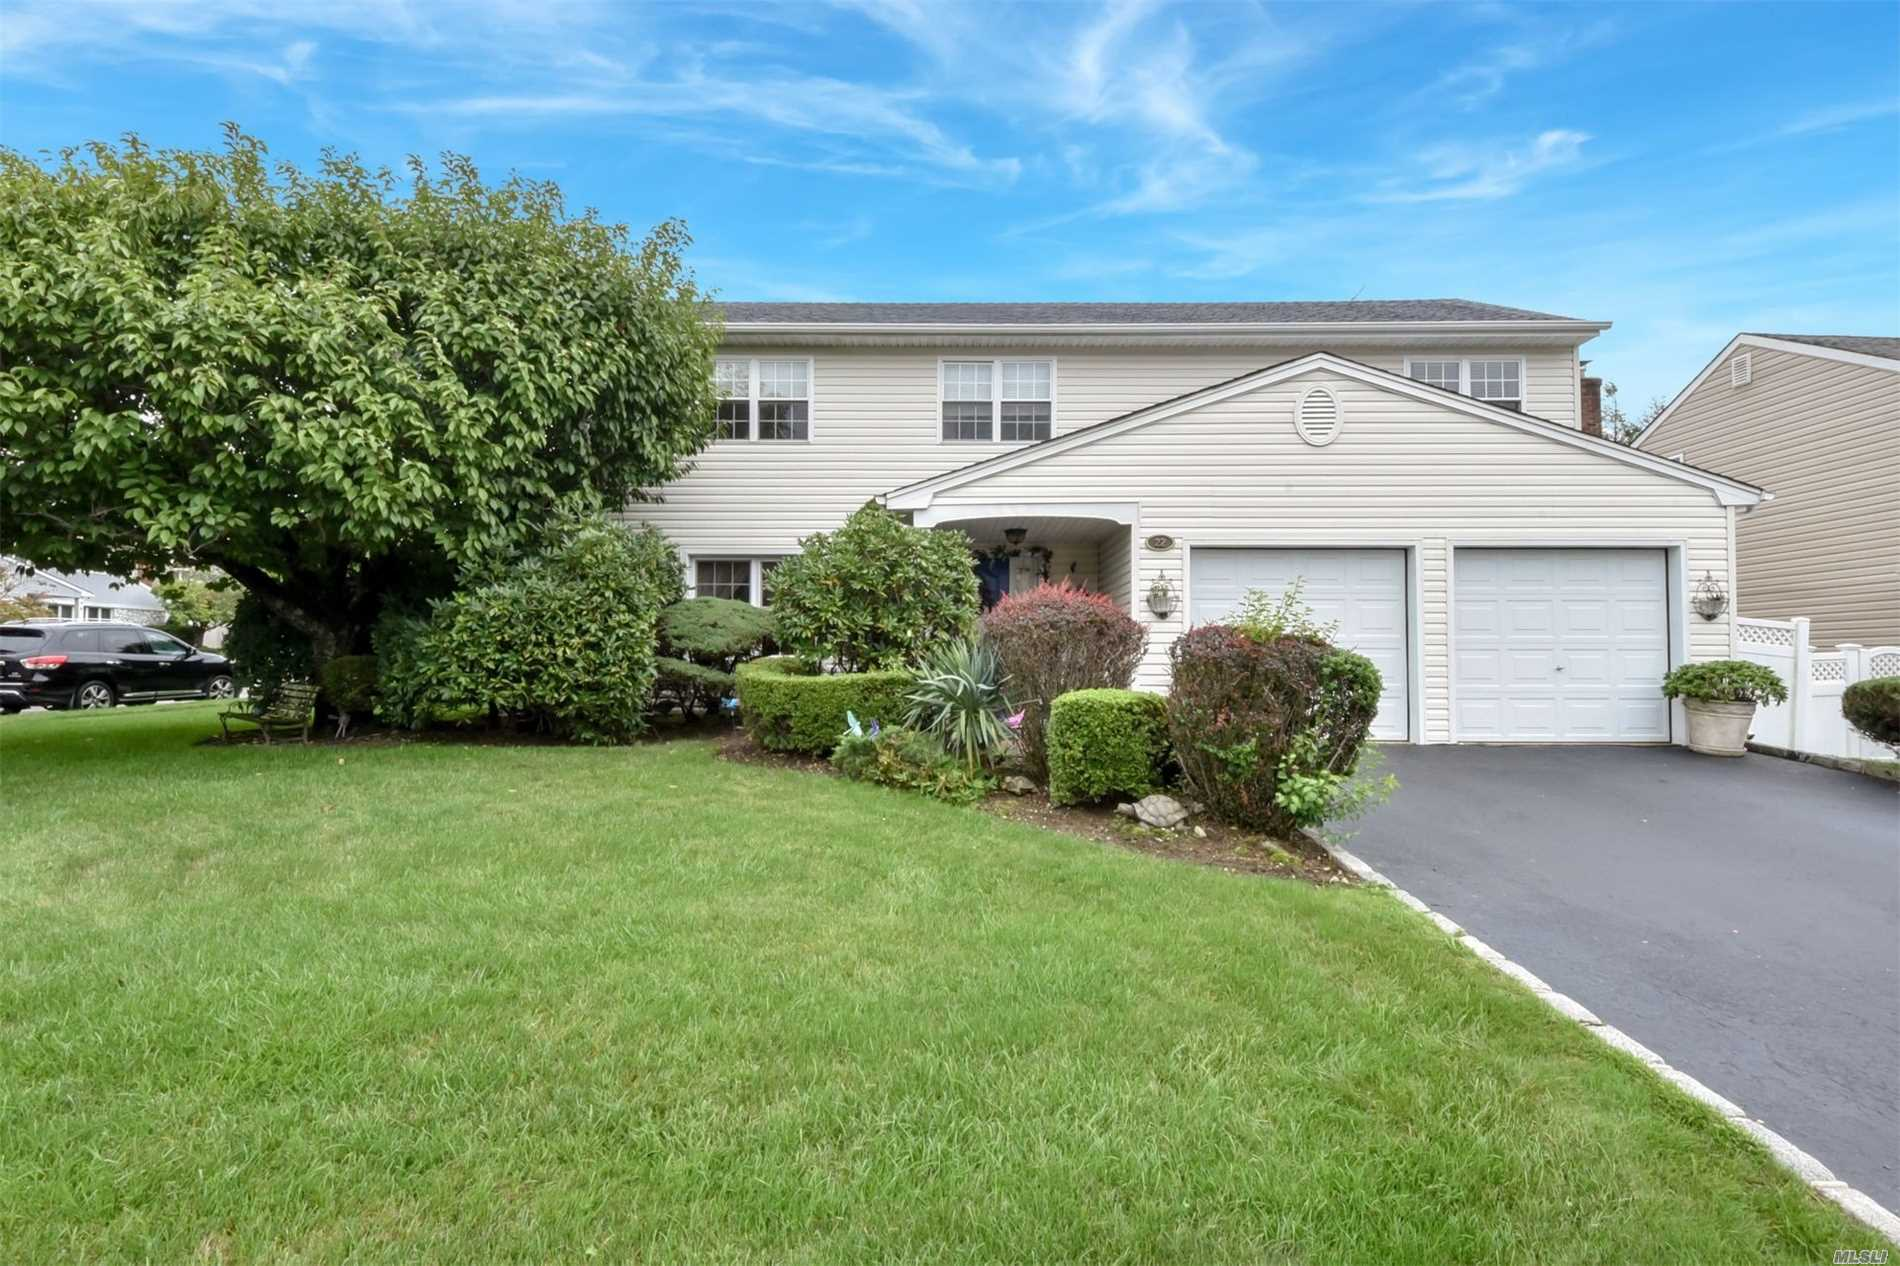 Superb Spacious Splanch, Very Large Room. The Best Designed Splanch In Plainview Built In 1985, Powder Room On Main Level, Open! Airy! Spacious! Must See! Professionally Landscaped Country Club Property.